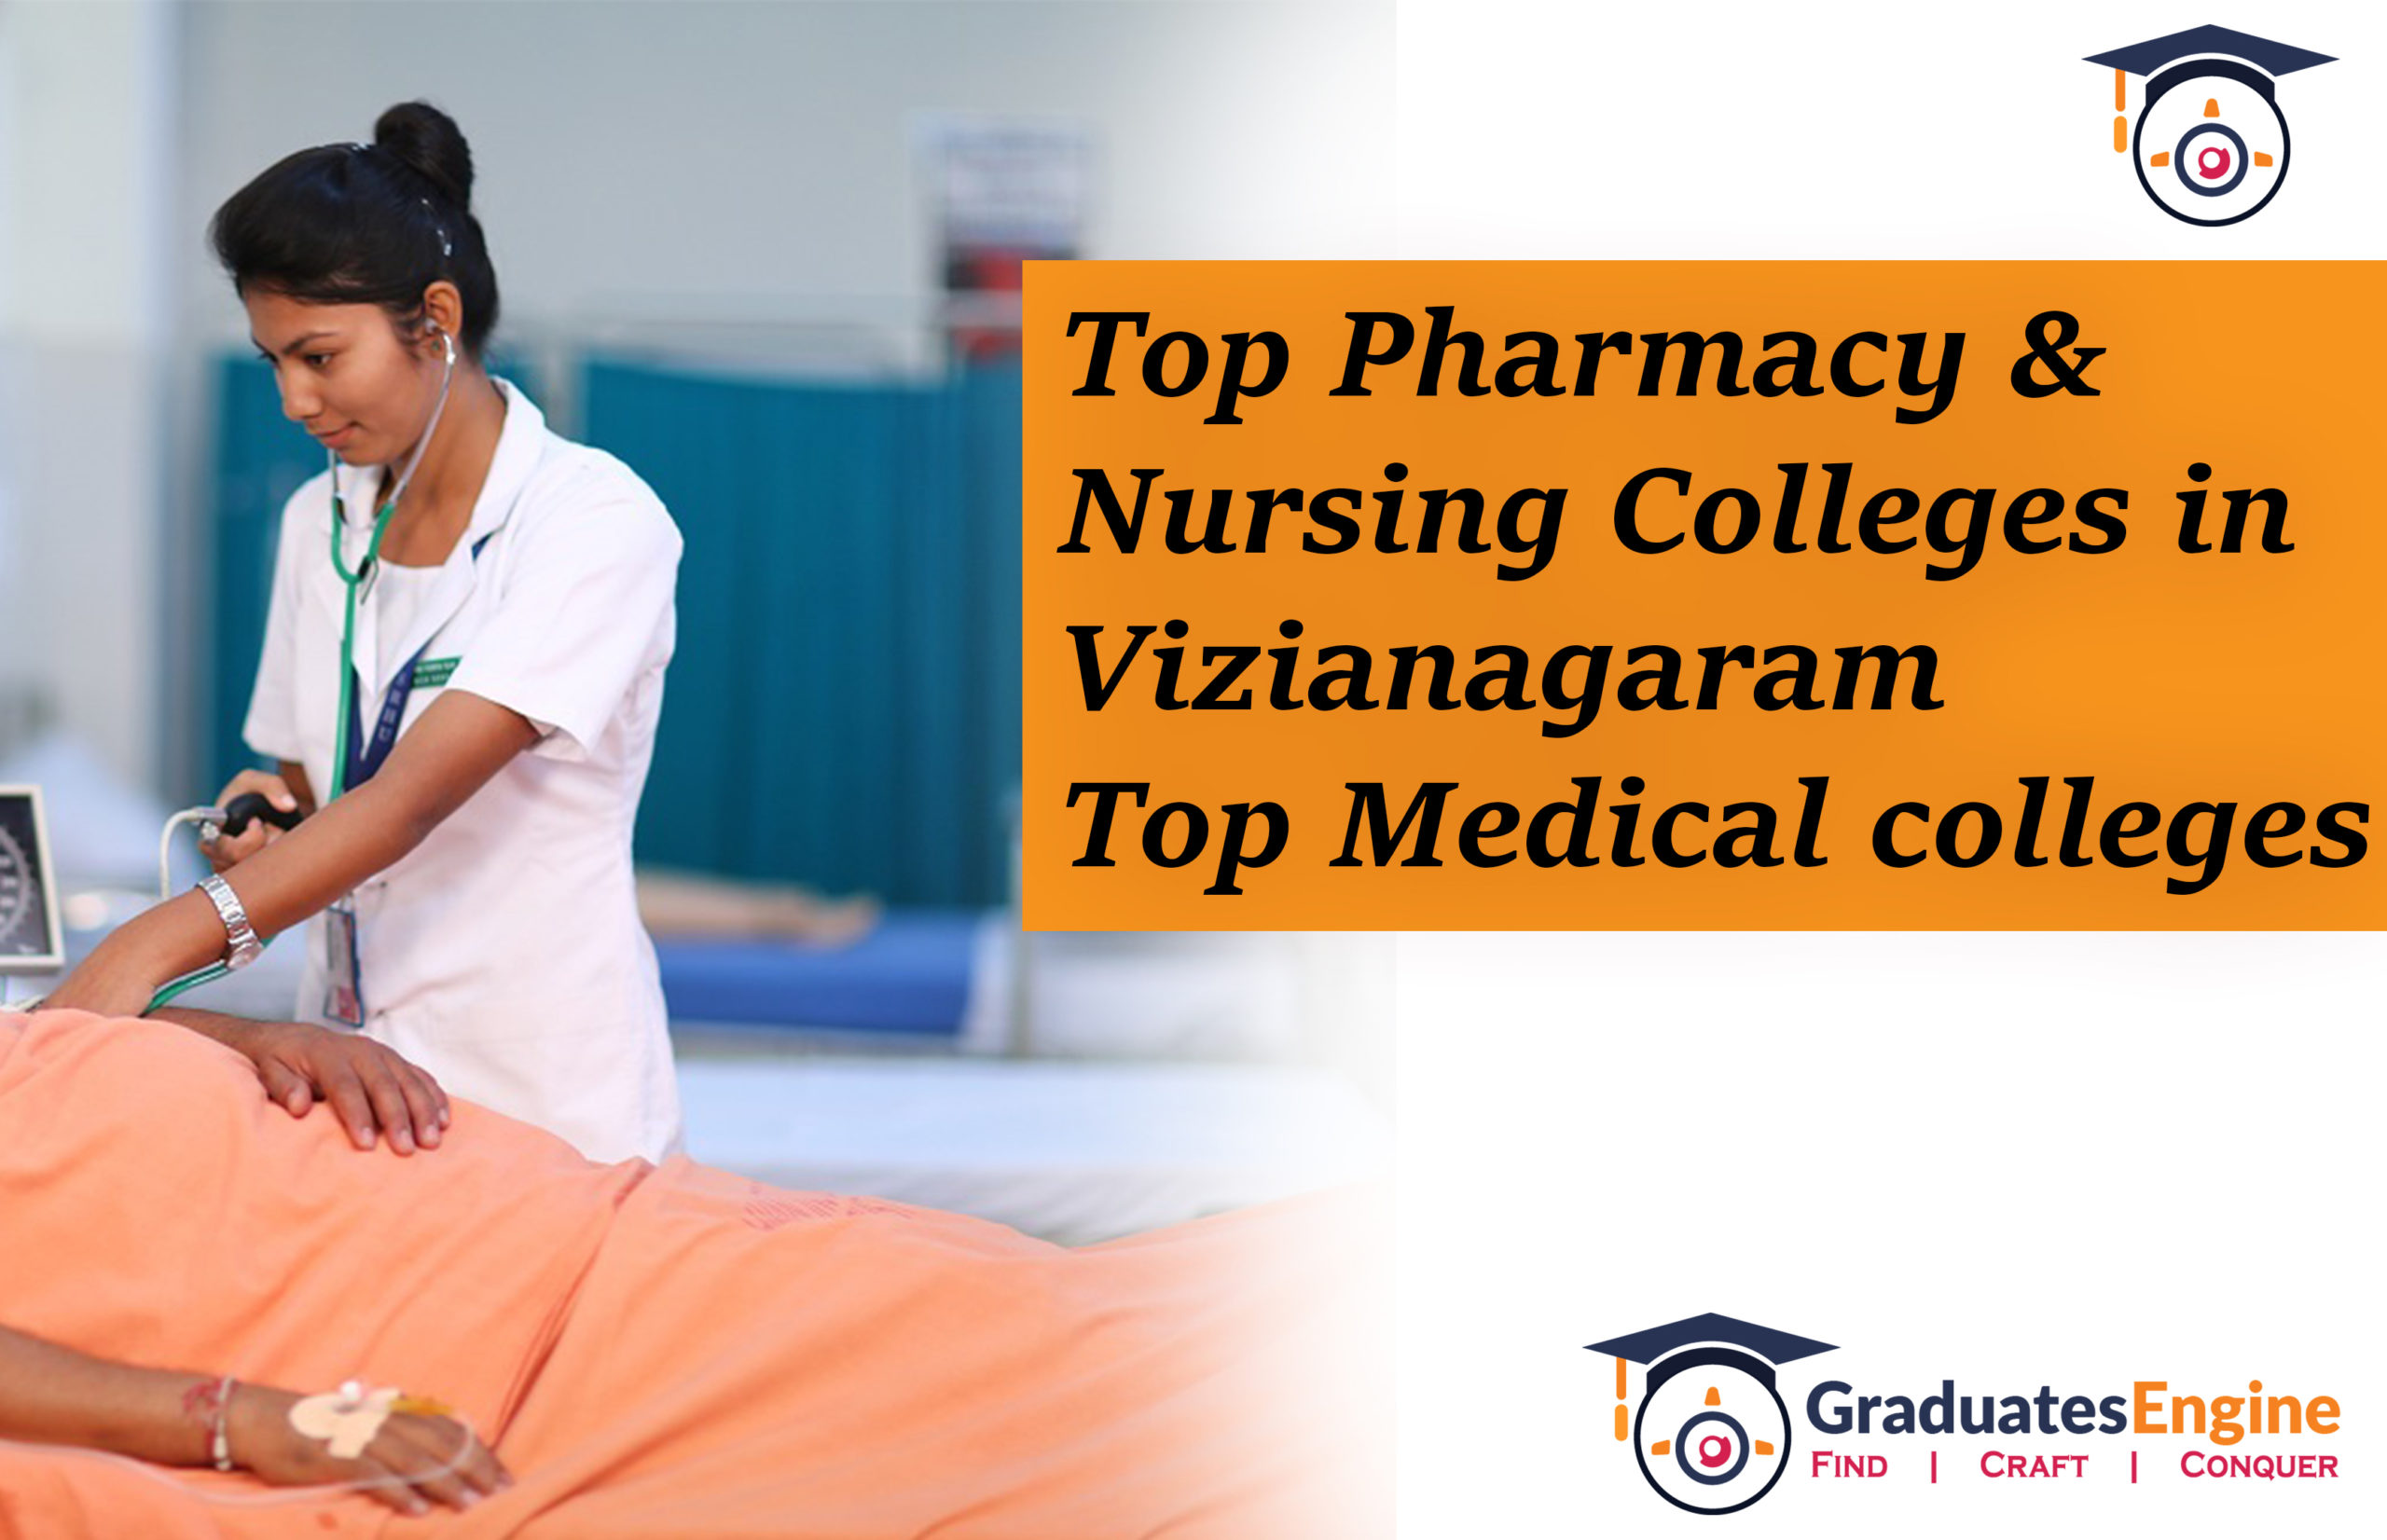 Educational News Top Pharmacy and Nursing Colleges in Vizianagaram